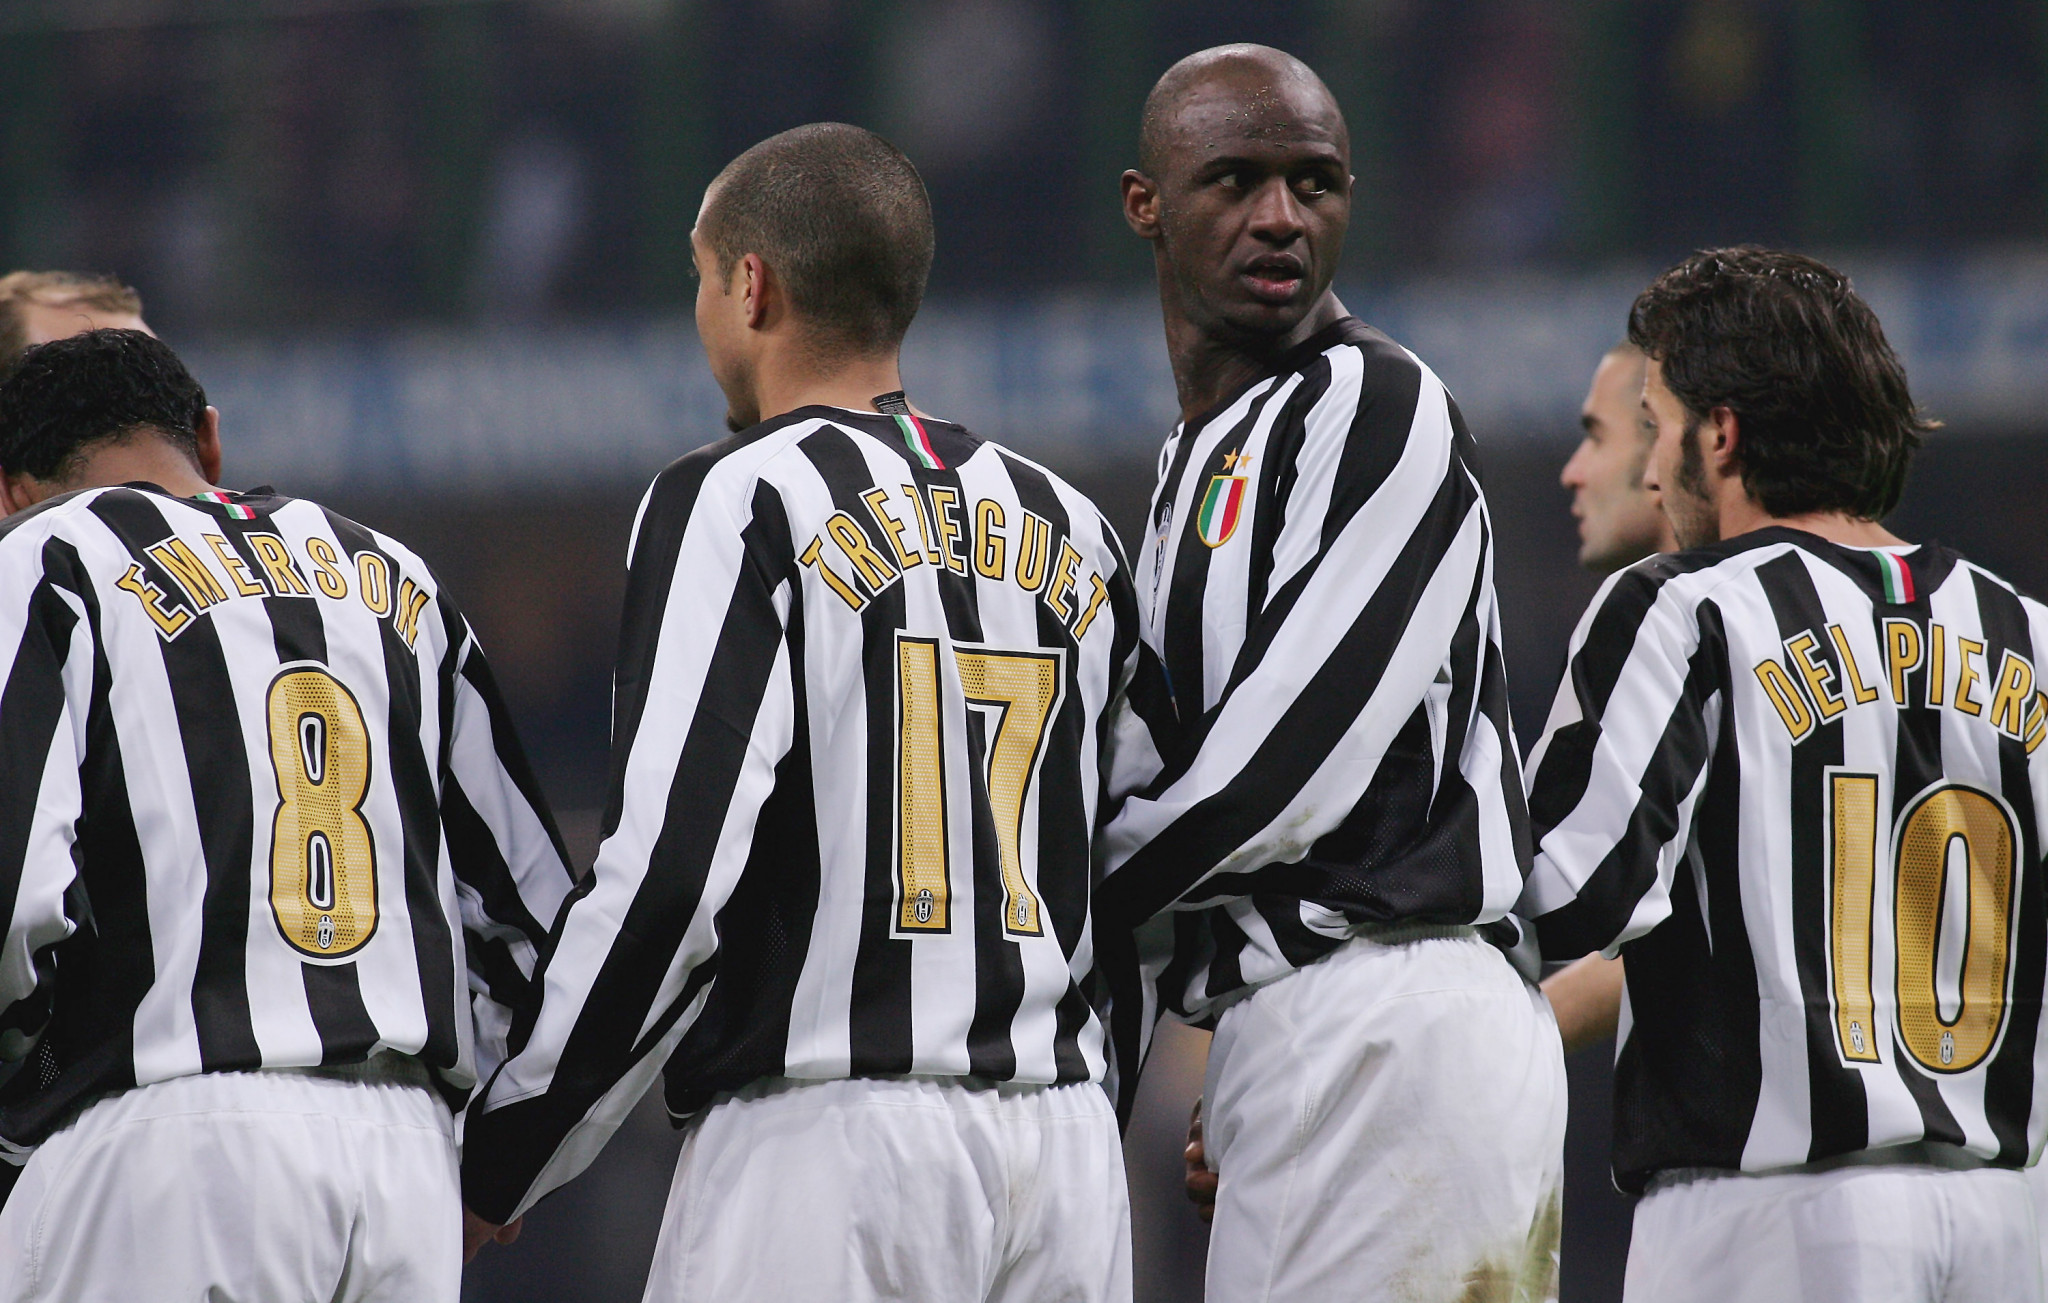 Juventus was one of five Italian clubs punished for match-fixing in the mid 2000s ©Getty Images